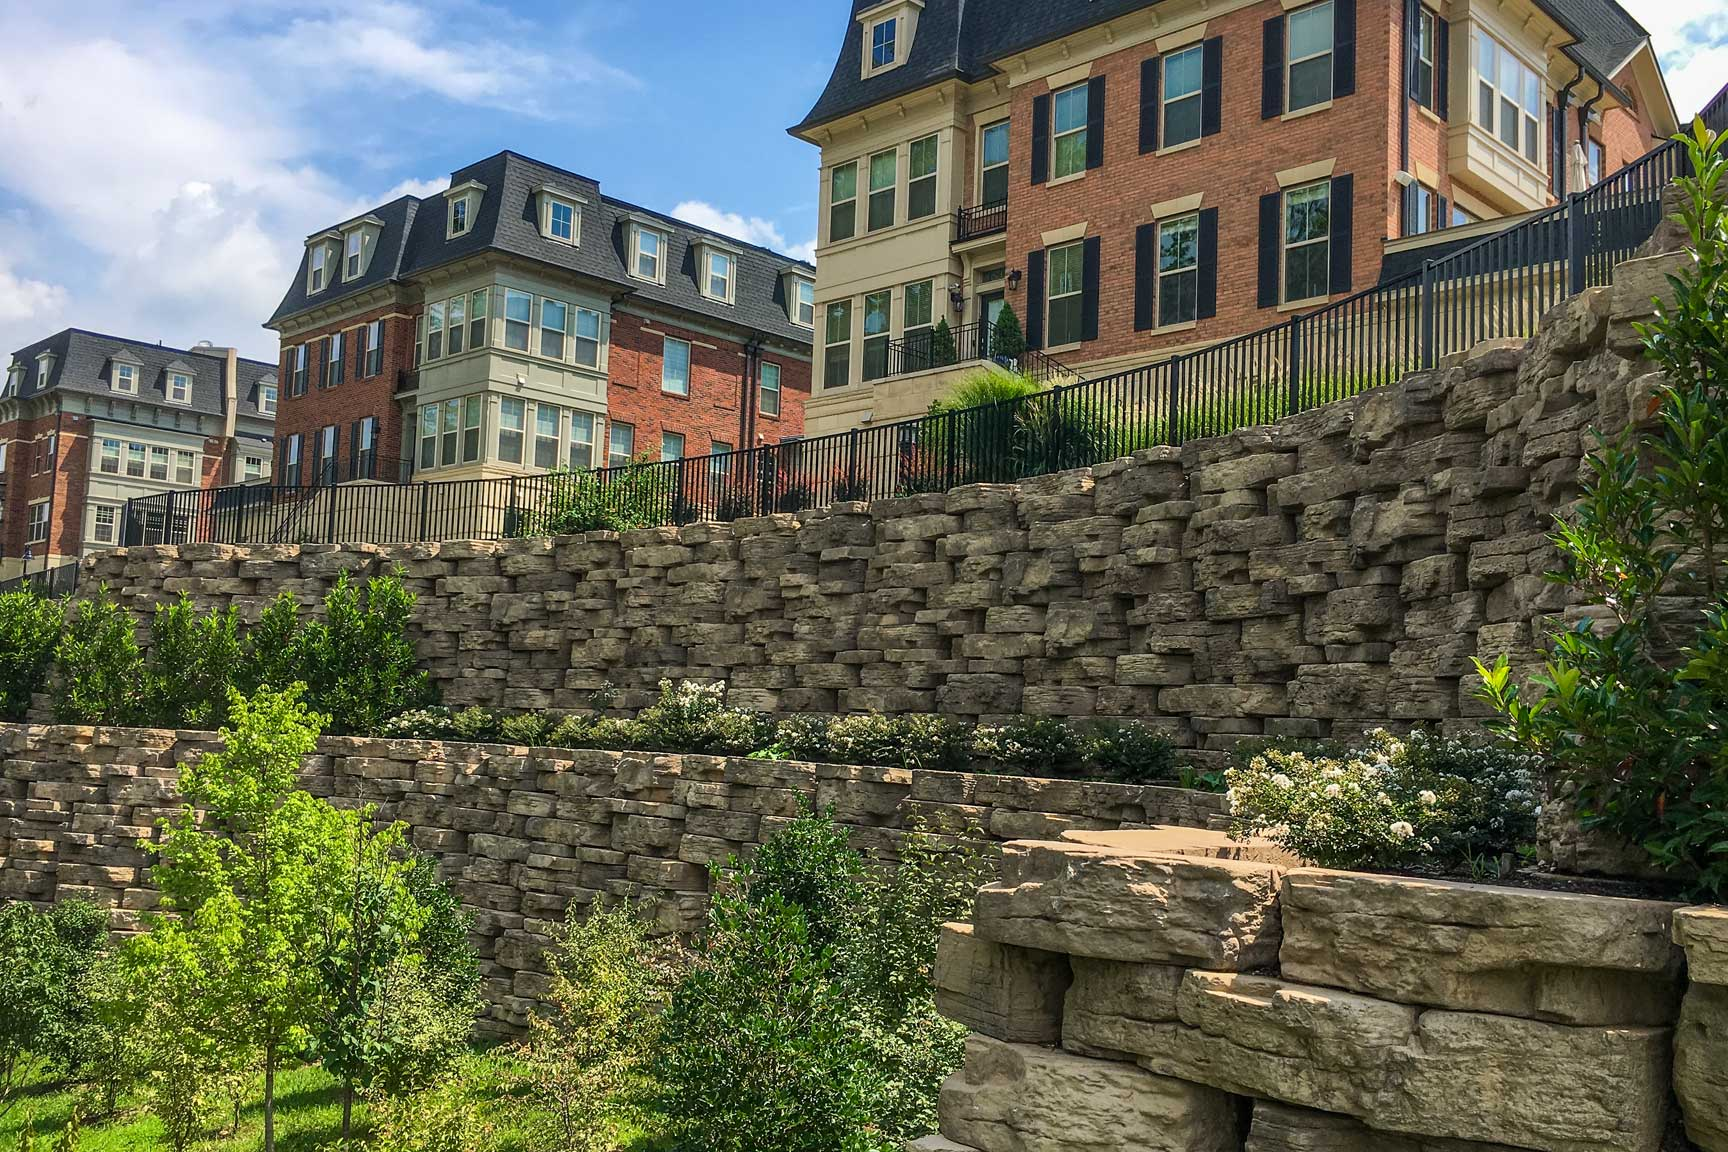 Commercial landscaping with Rosetta Hardscapes